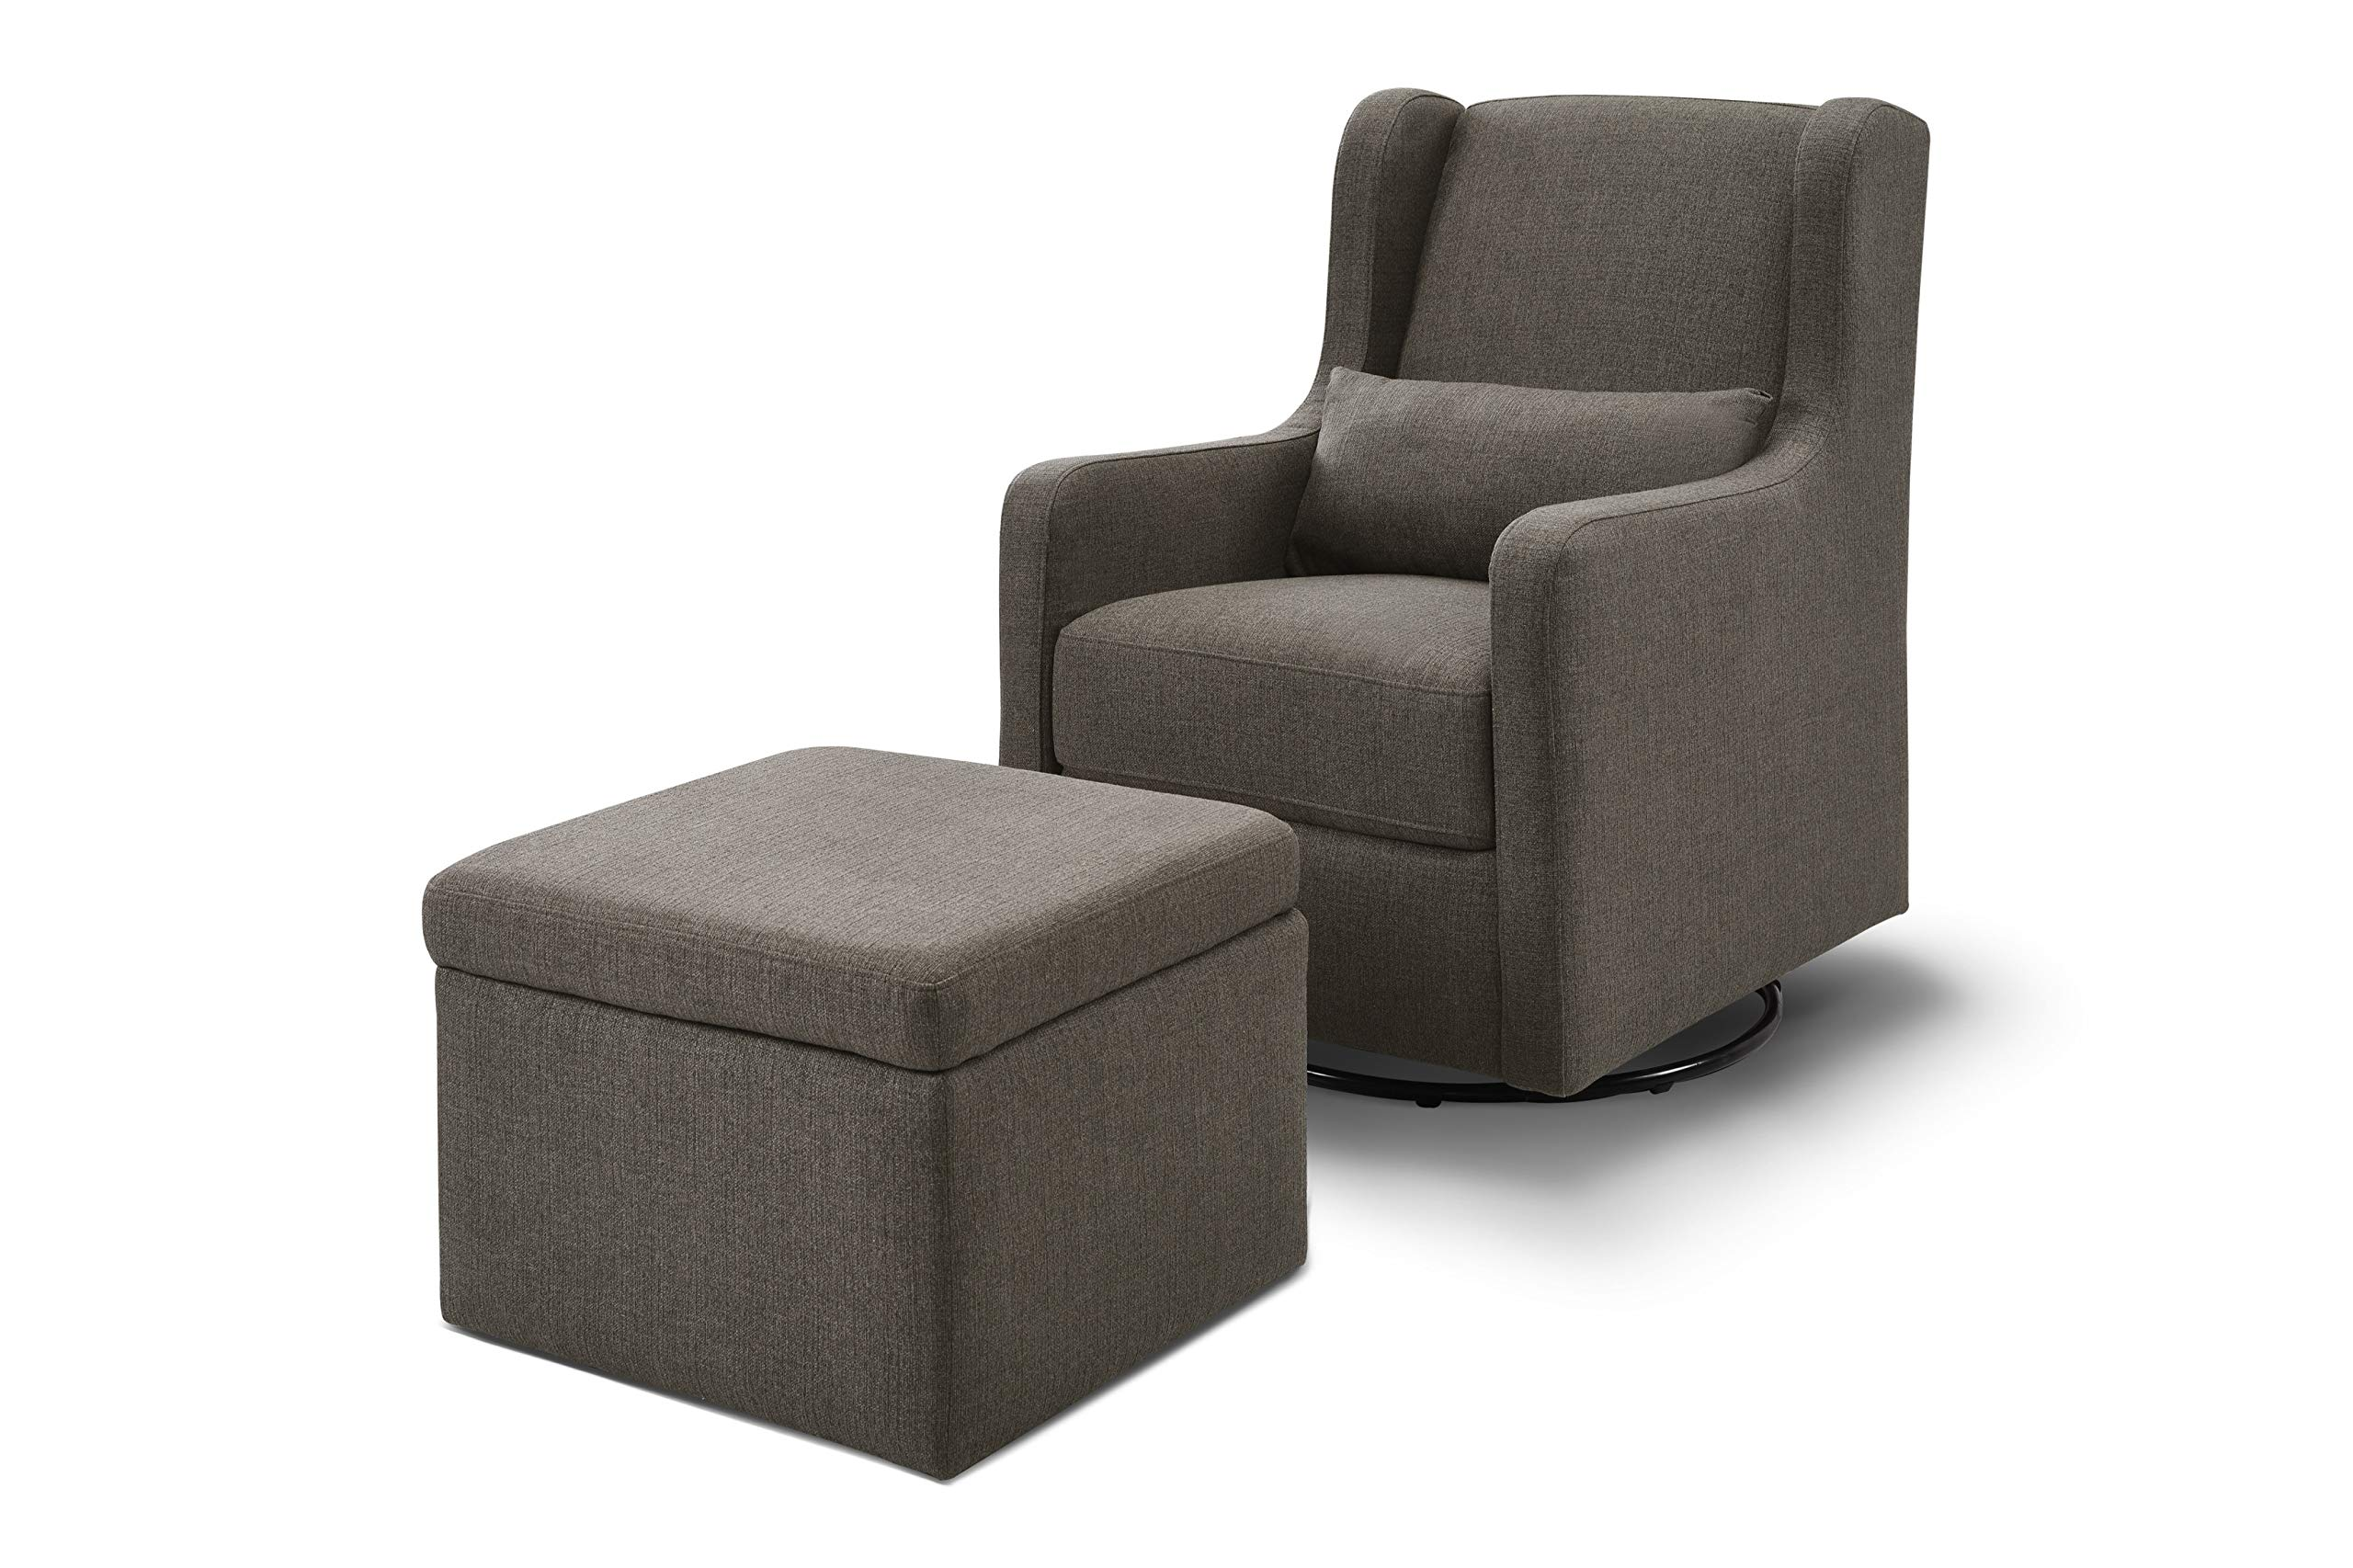 Carter's by Davinci Adrian Swivel Glider with Storage Ottoman in Charcoal Linen | Water Repellent and Stain Resistant Fabric